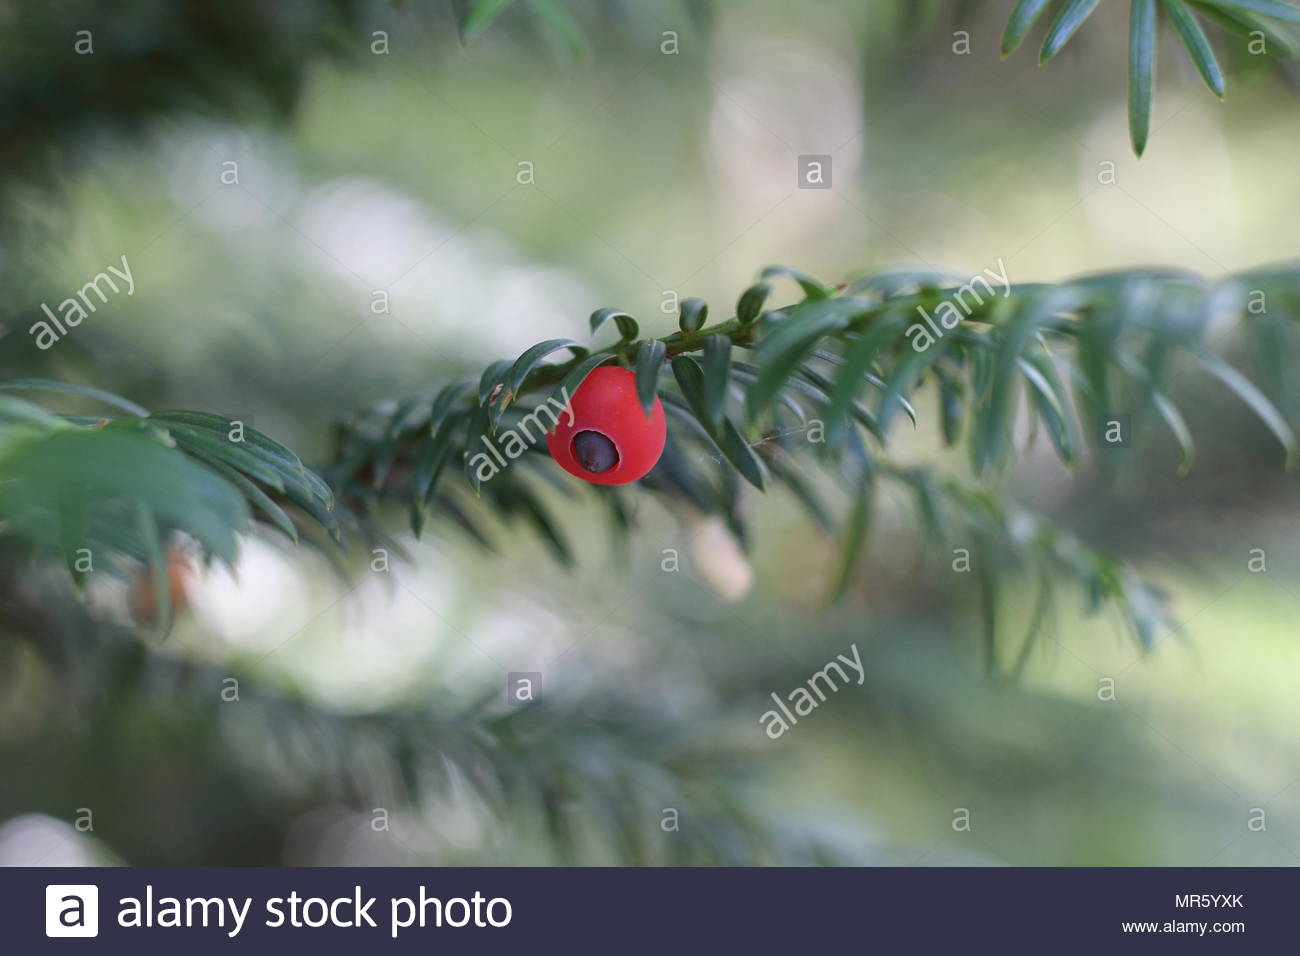 plant with small red berries stock image - Christmas Broom Decoration